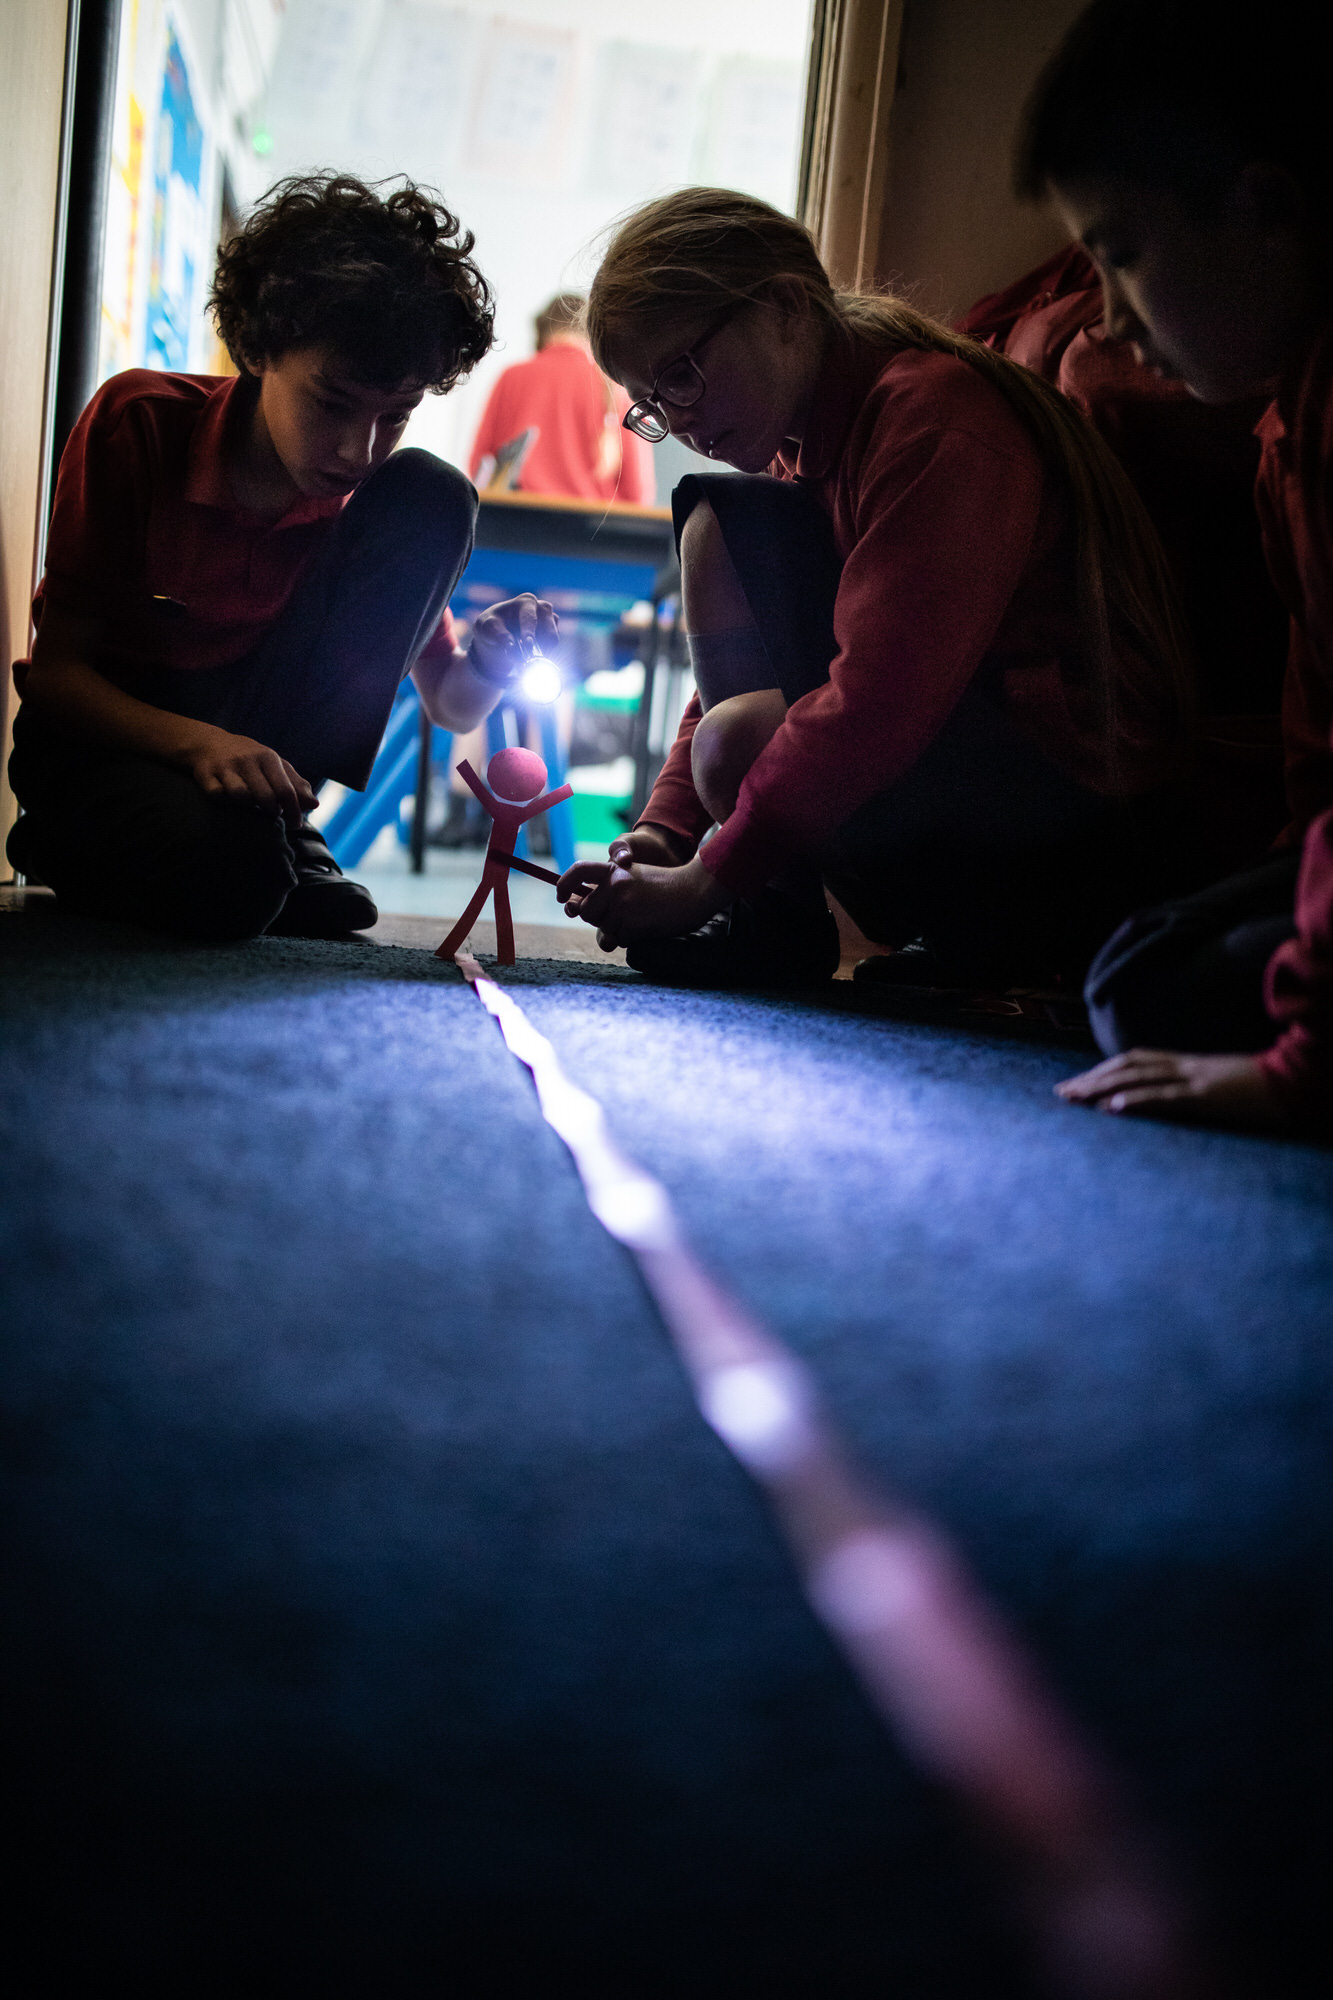 a science lesson, photographed by Hertfordshire school photographer Alannah Hebbert